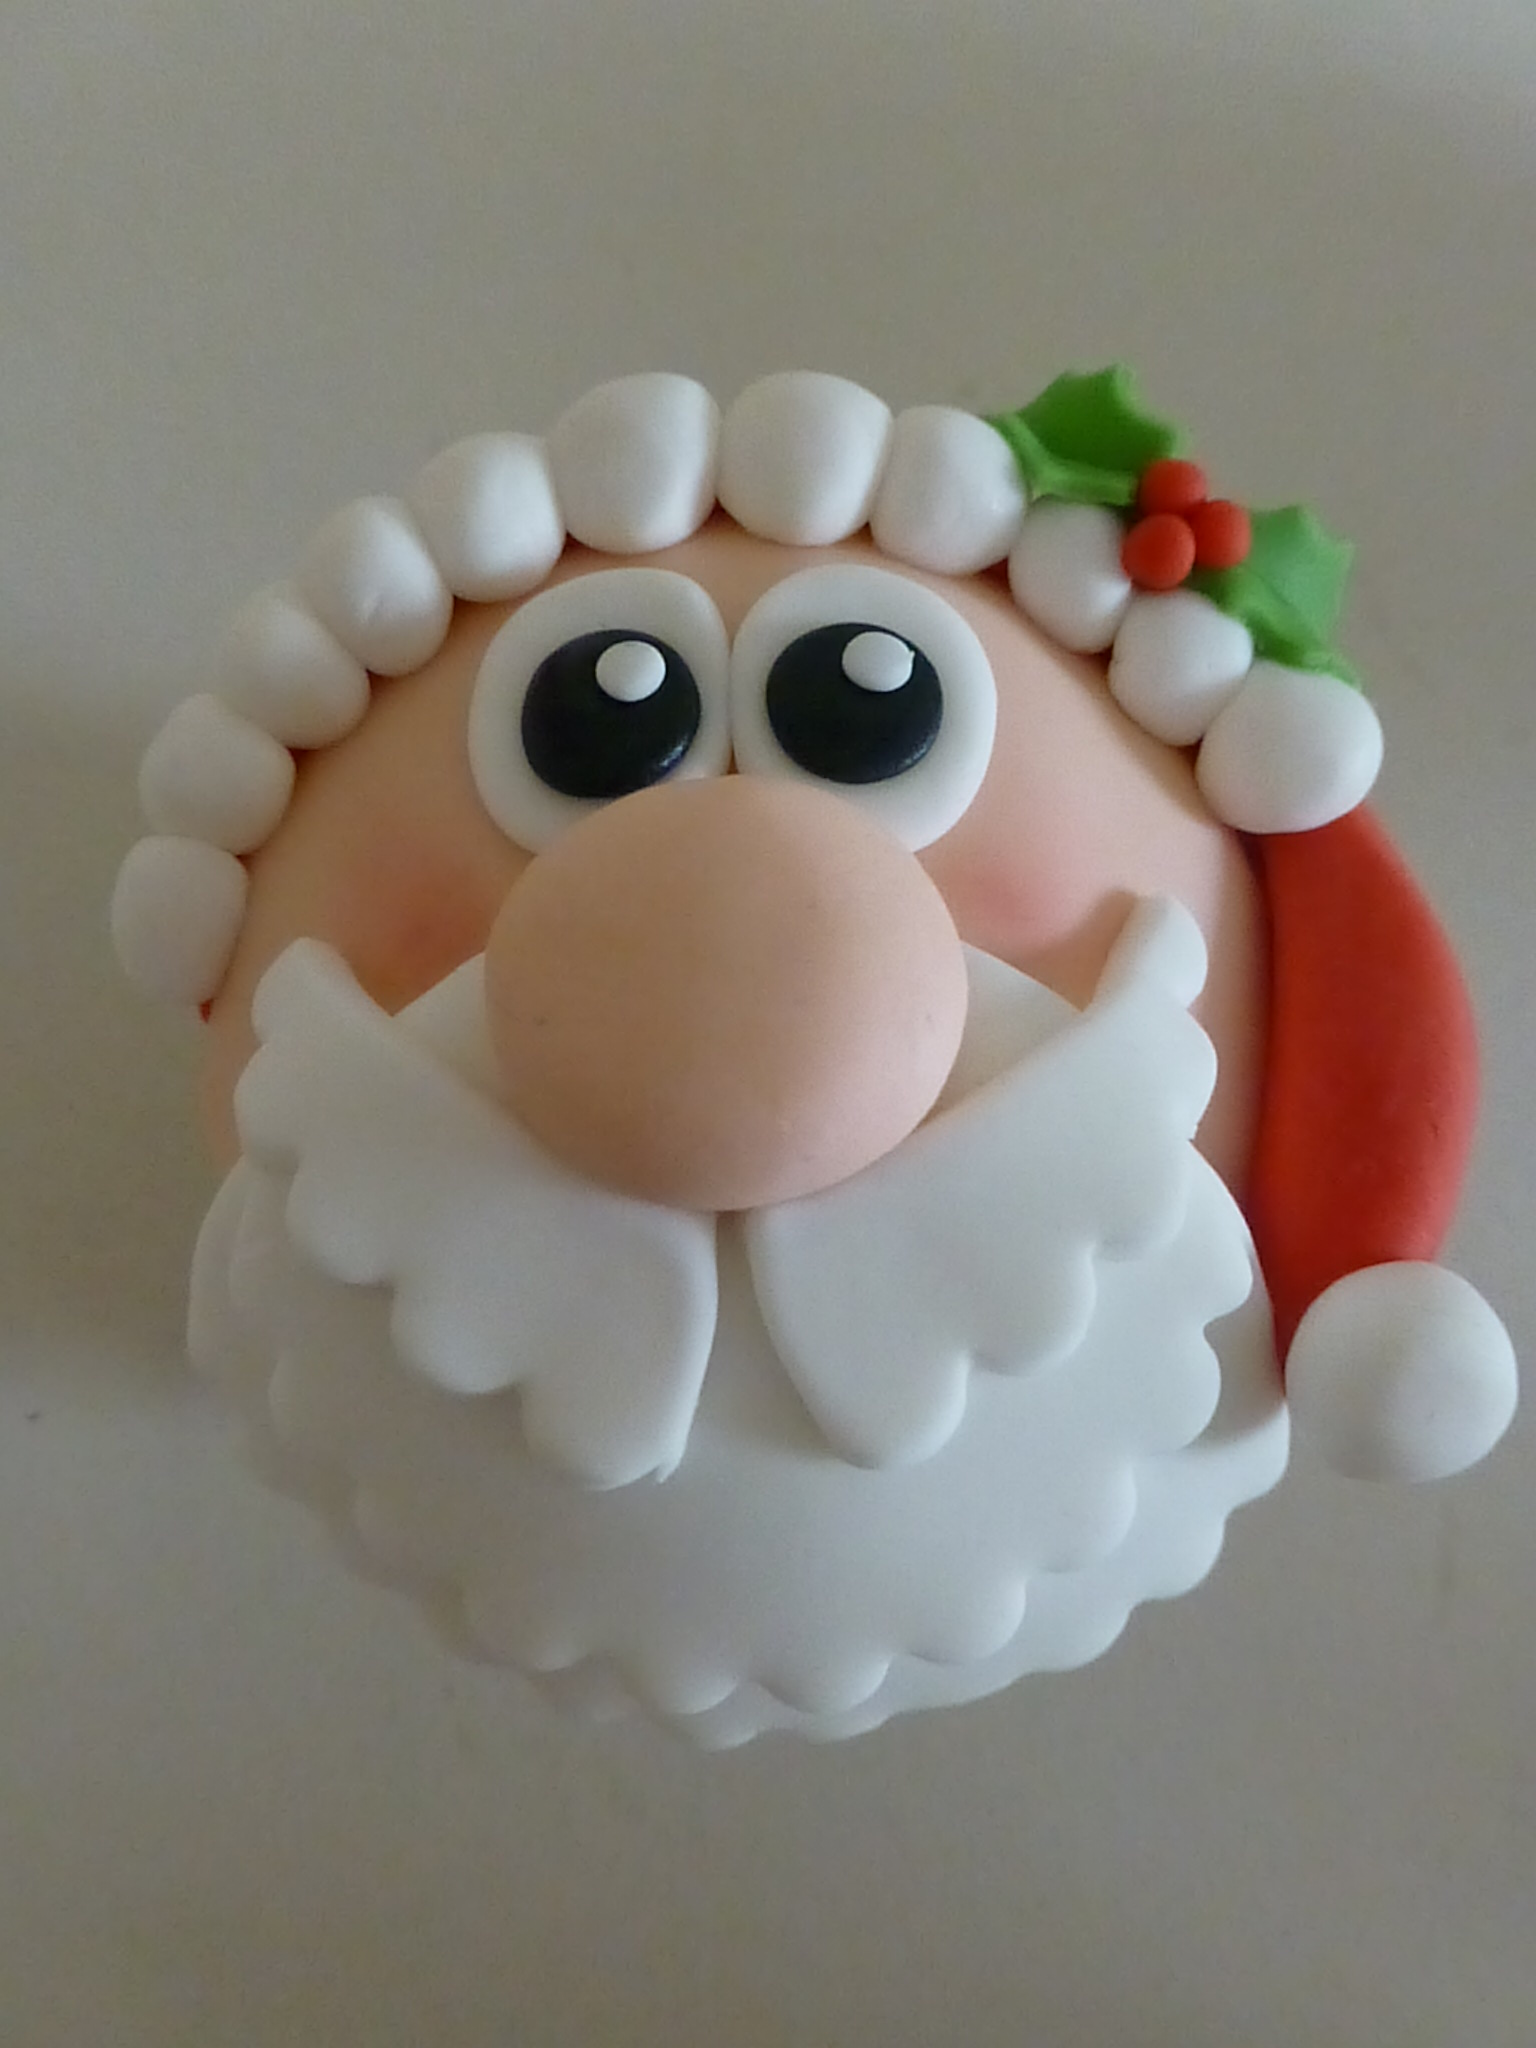 30 Mouthwatering Cake Designs For Christmas